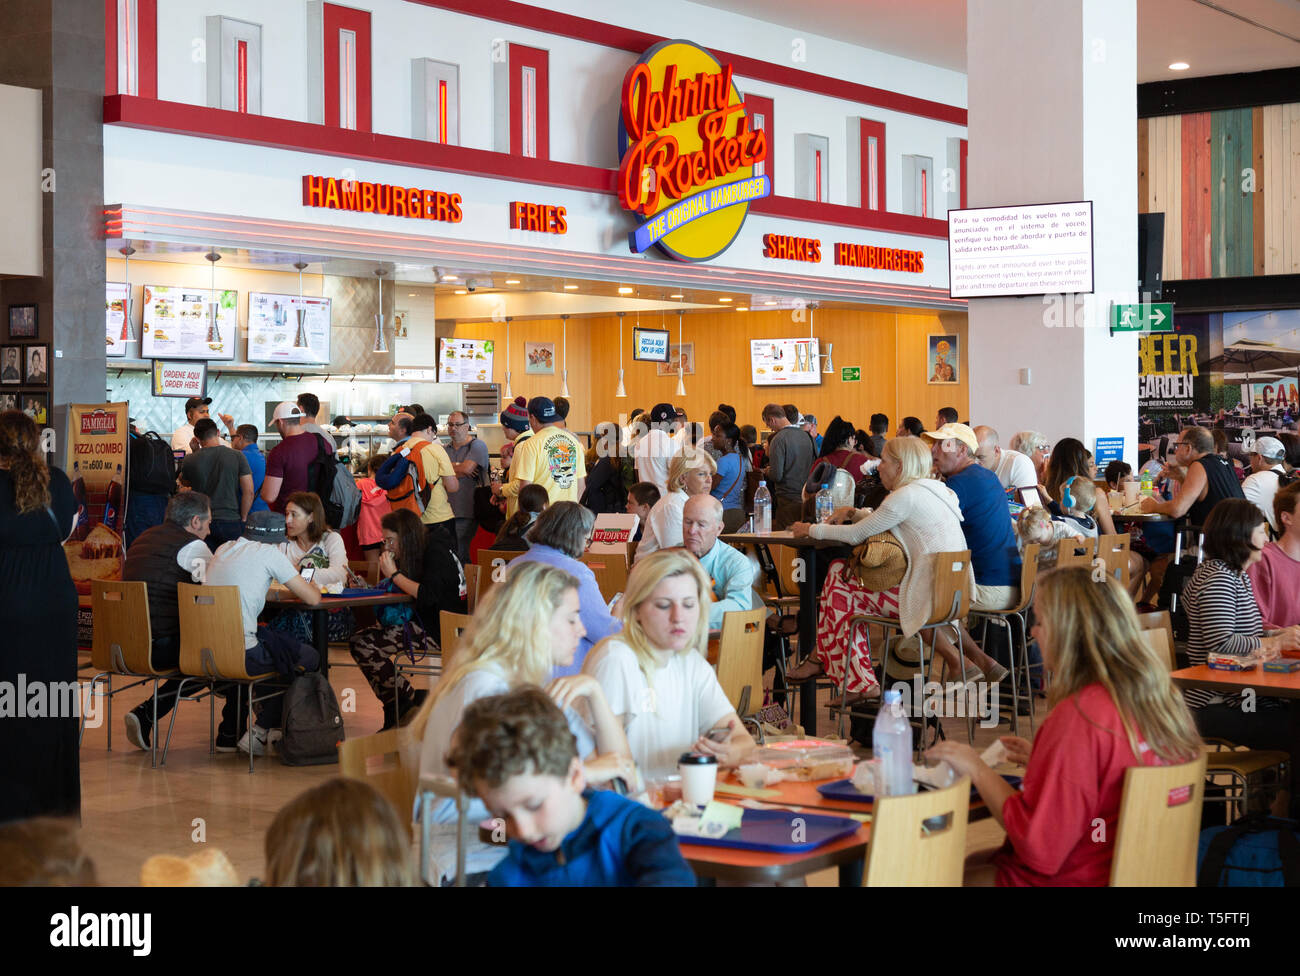 People eating and drinking at the Johnny Rockets restaurant, departures, Terminal 3, Cancun airport Mexico - Stock Image